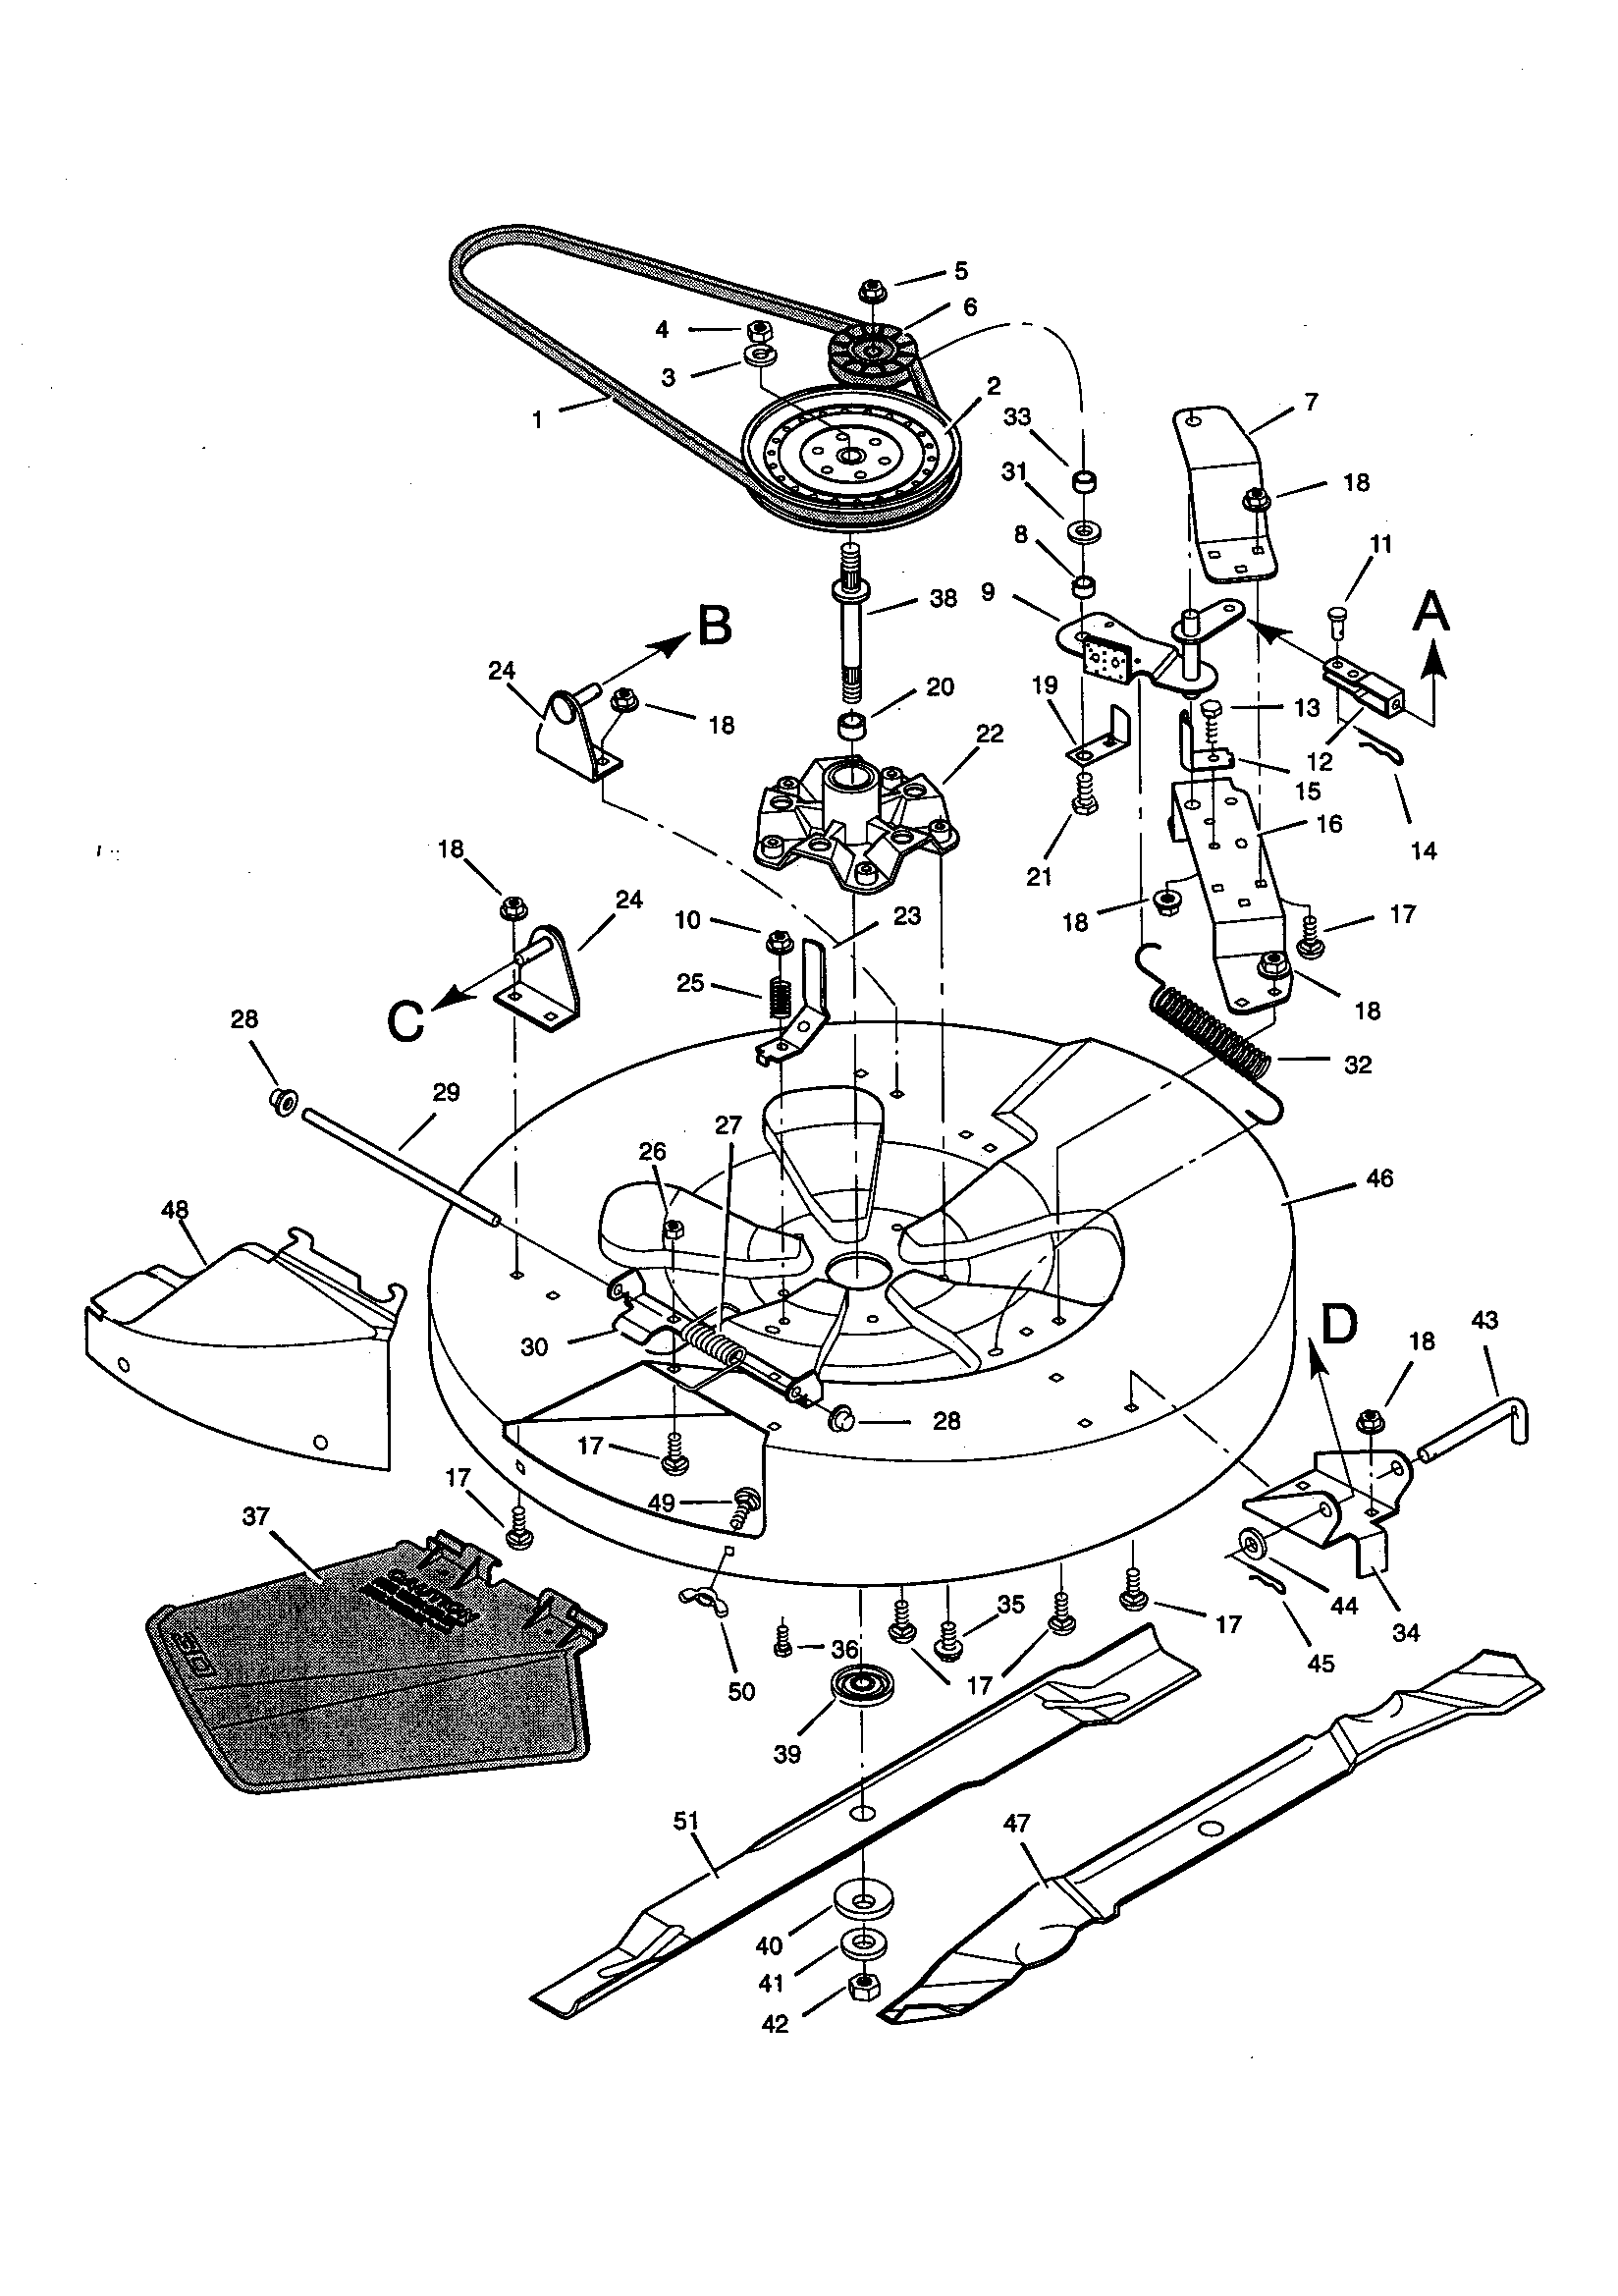 MOWER HOUSING Diagram & Parts List for Model 536270111